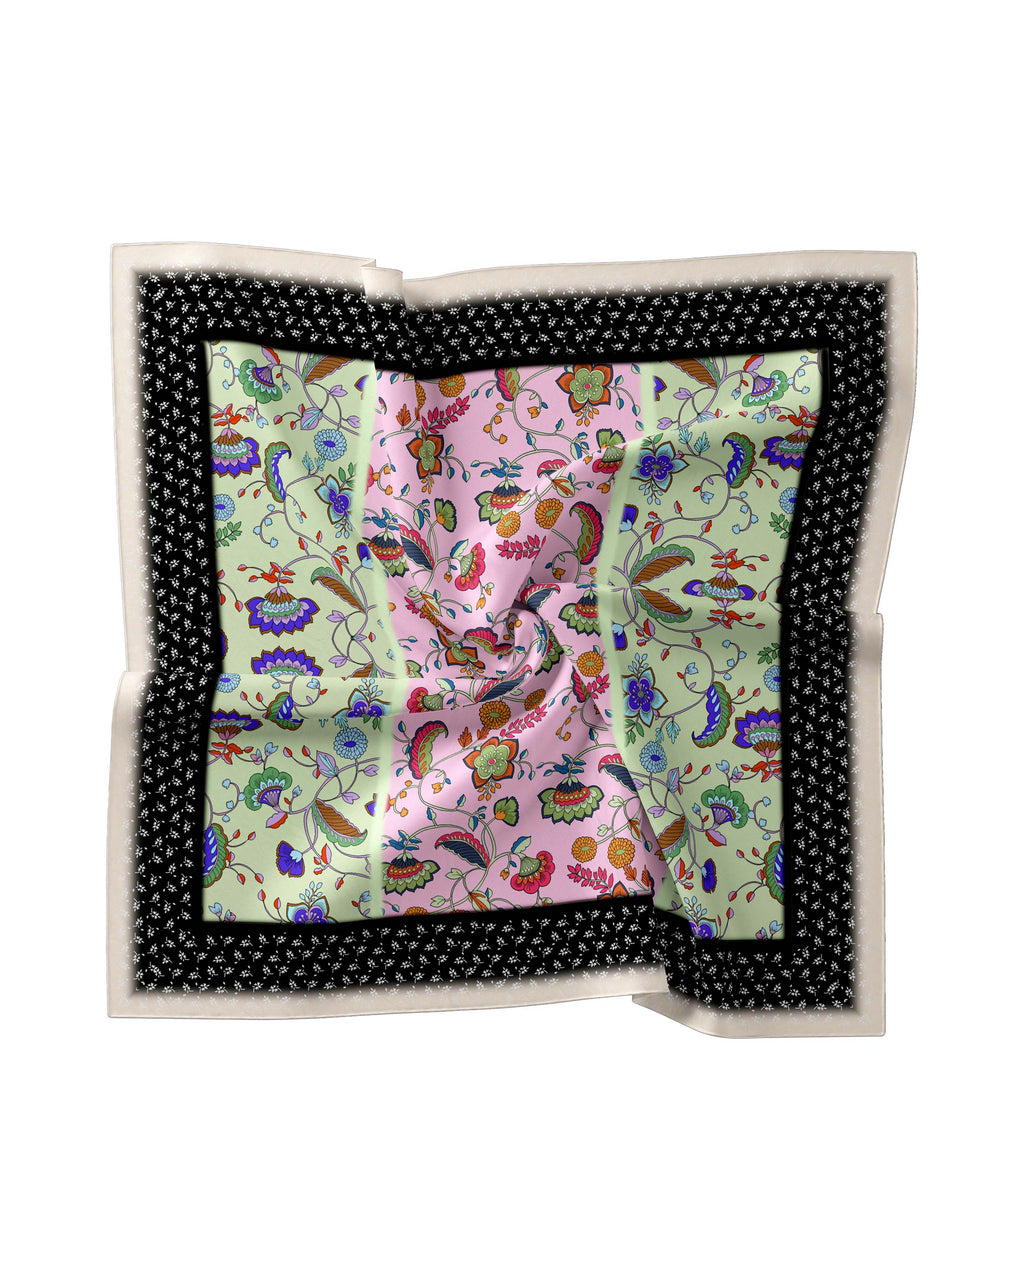 AC10005 - CHABANA SILK BLEND SCARF - accessories - scarves - Made from leftover fabric from our Summer 2020 collection, these scarves are the perfect addition to your warm weather wardrobe. Choose from 7 different colorways. Style as a head scarf, tie it on your beach bag, or just throw around your neck.The possibilities are endless.